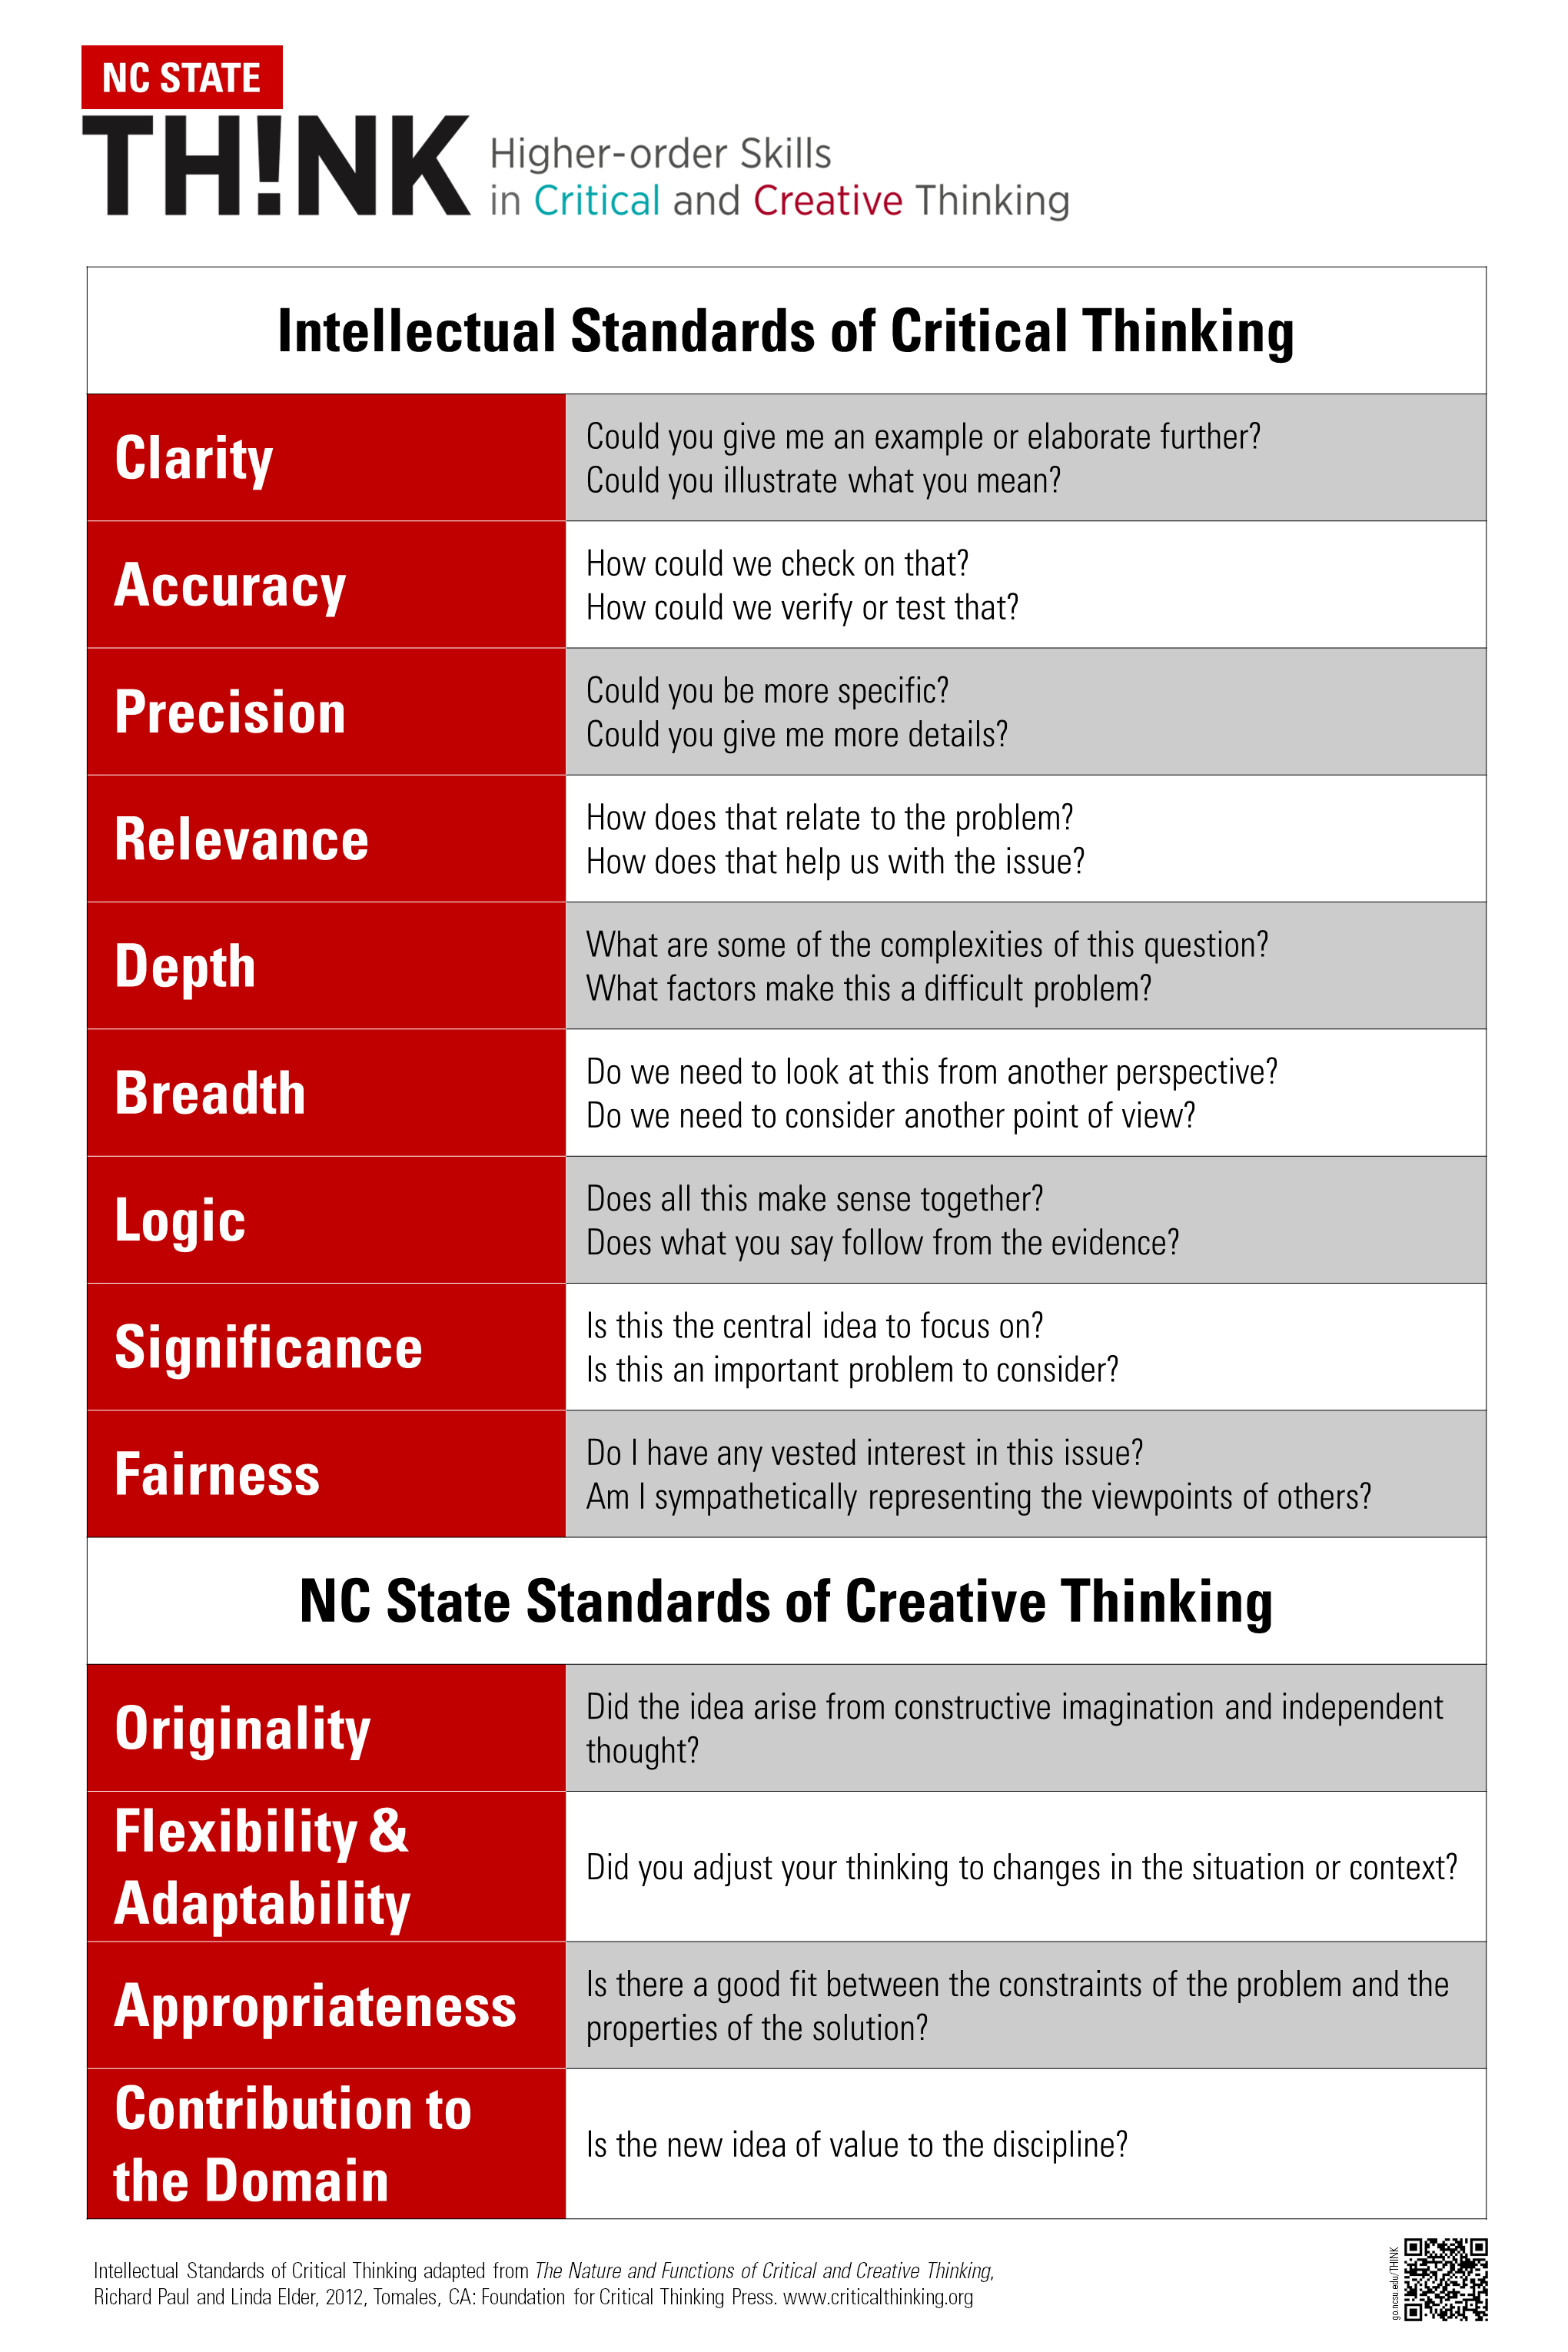 intellectual standards poster small digital promise intellectual standards poster small digital promise creative thinking poster and creative